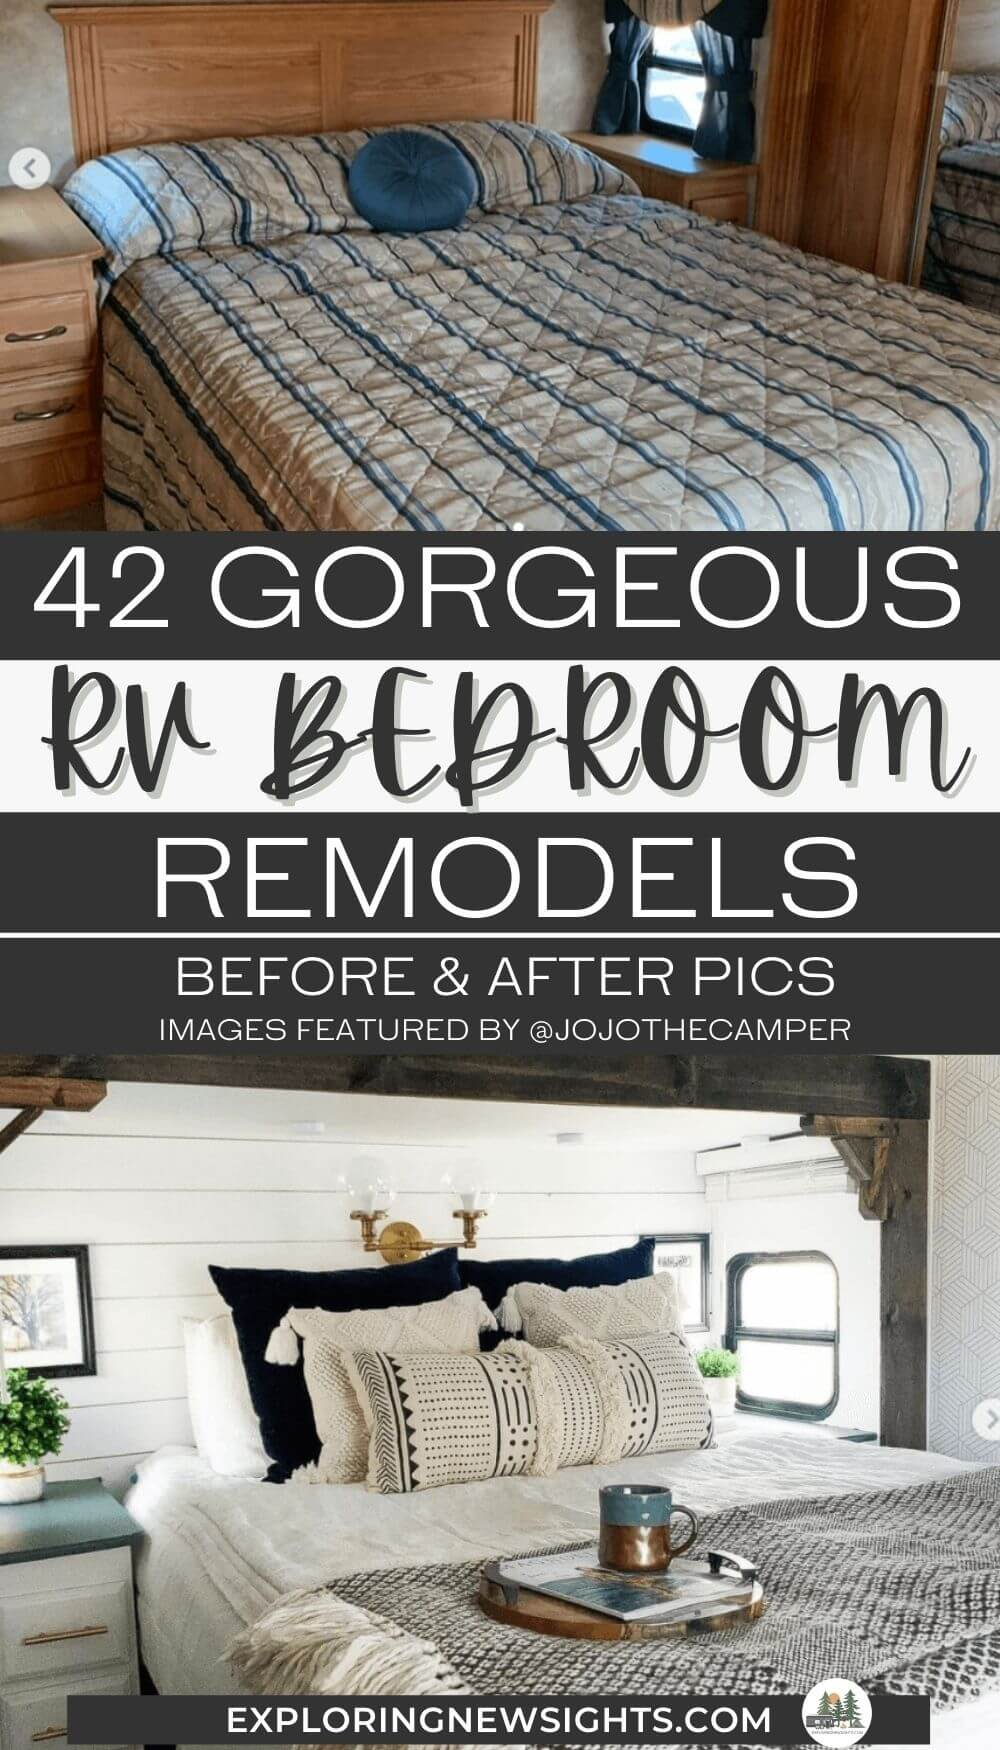 RV Bedroom Remodels